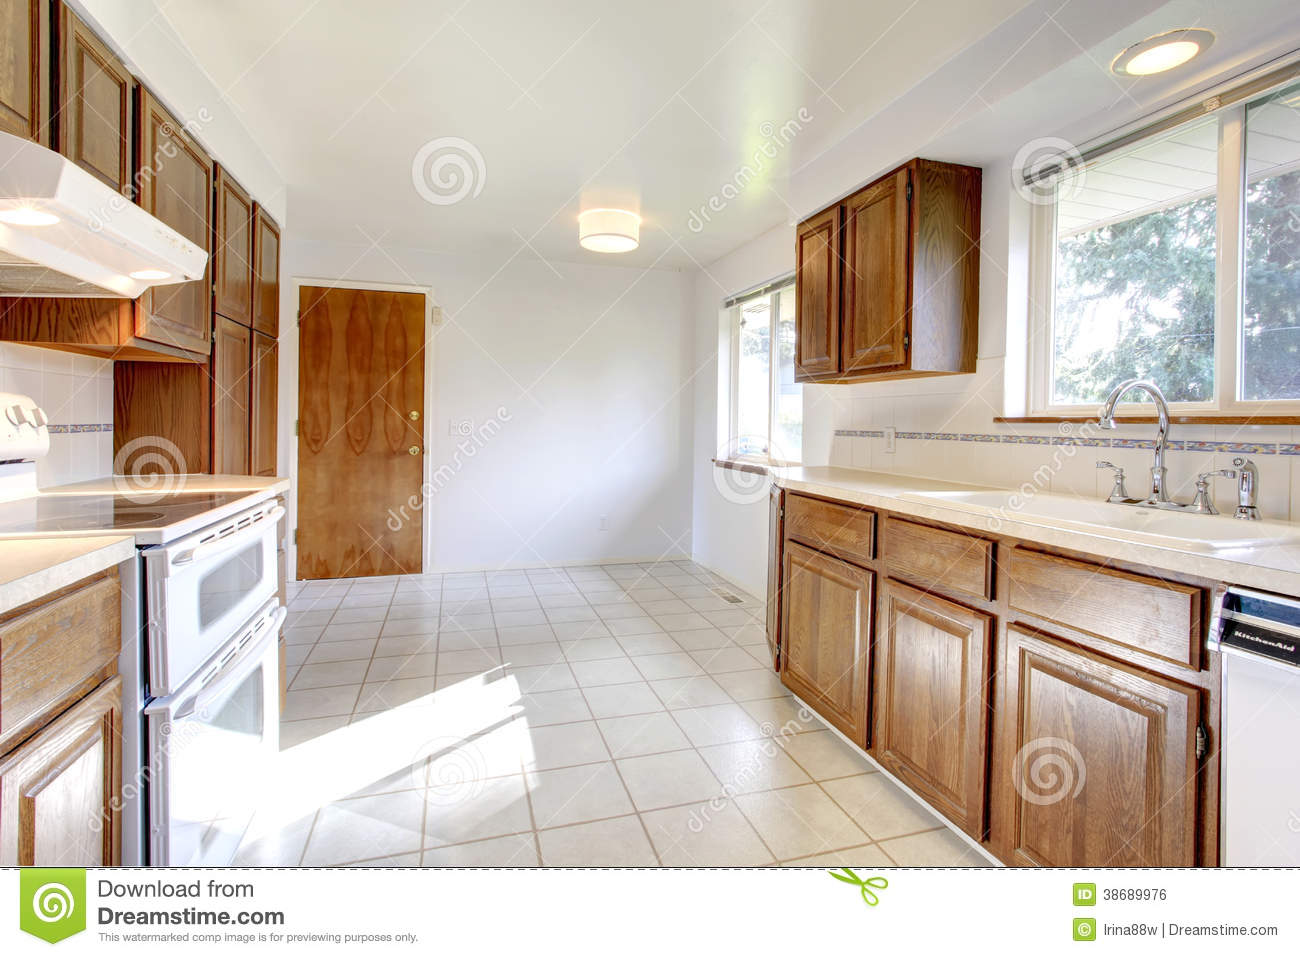 White Floor White Cabinets White Kitchen Room With Brown Cabinets Royalty Free Stock